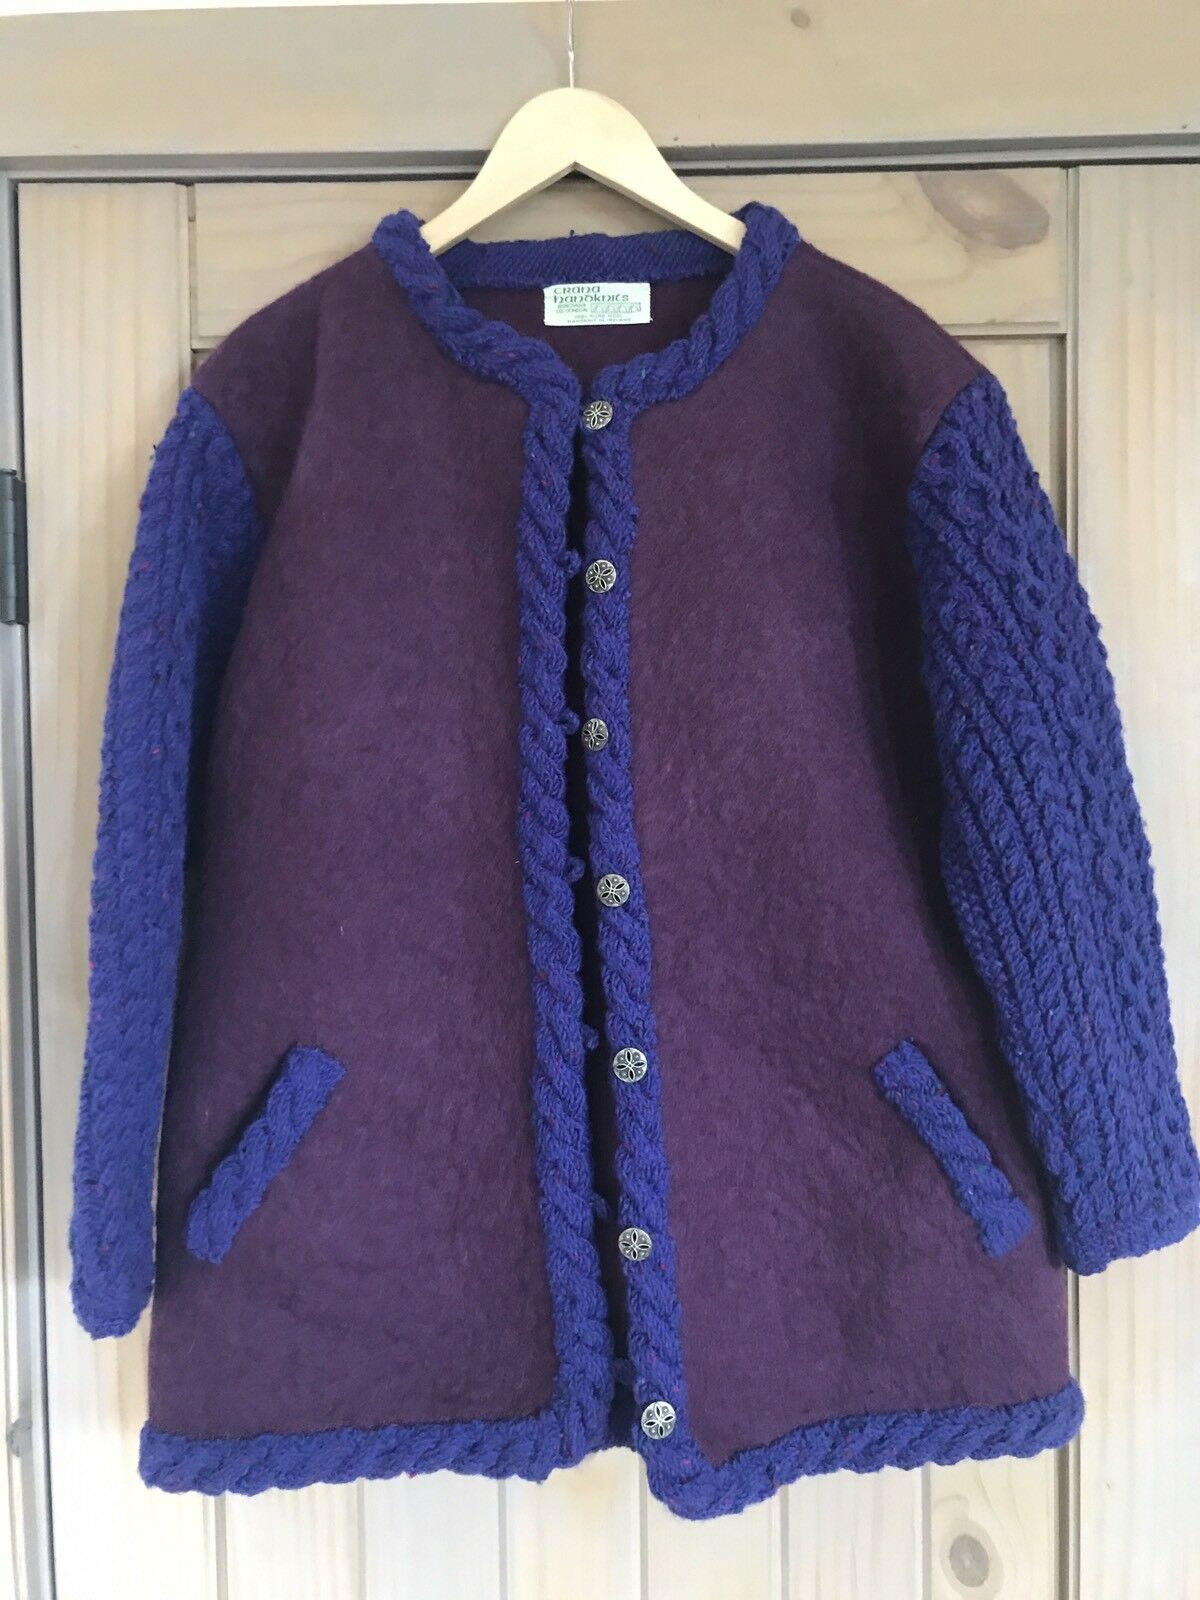 Handknit Wool Sweater Coat Buncrana Donegal Made In Ireland Large XL